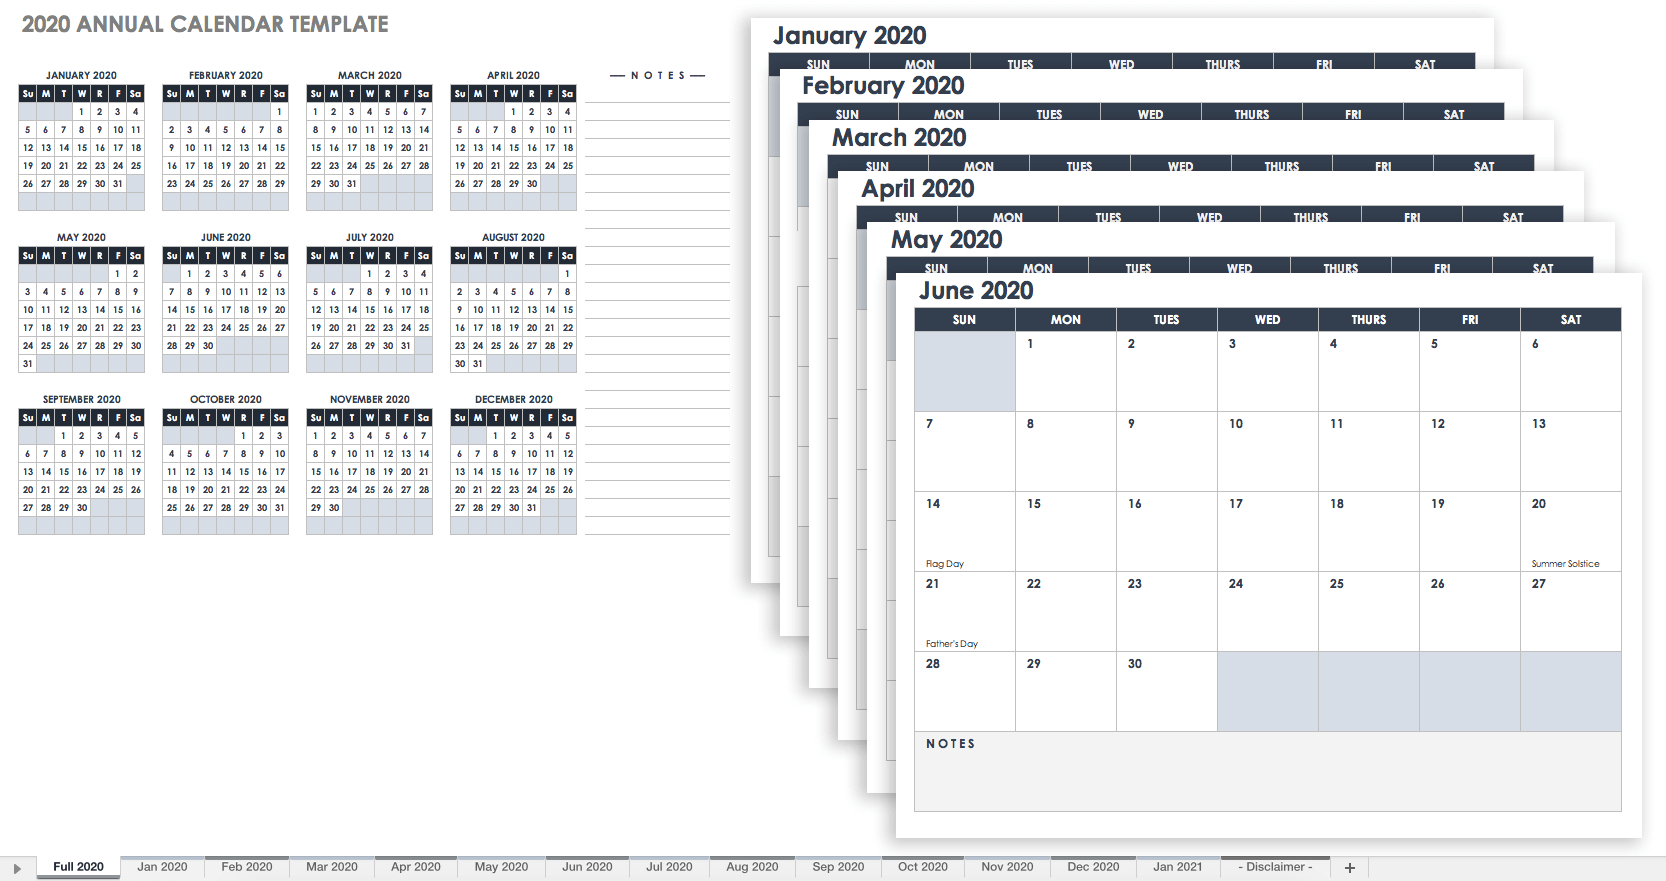 15 Free Monthly Calendar Templates | Smartsheet for Printable 3 Month Calendar Template